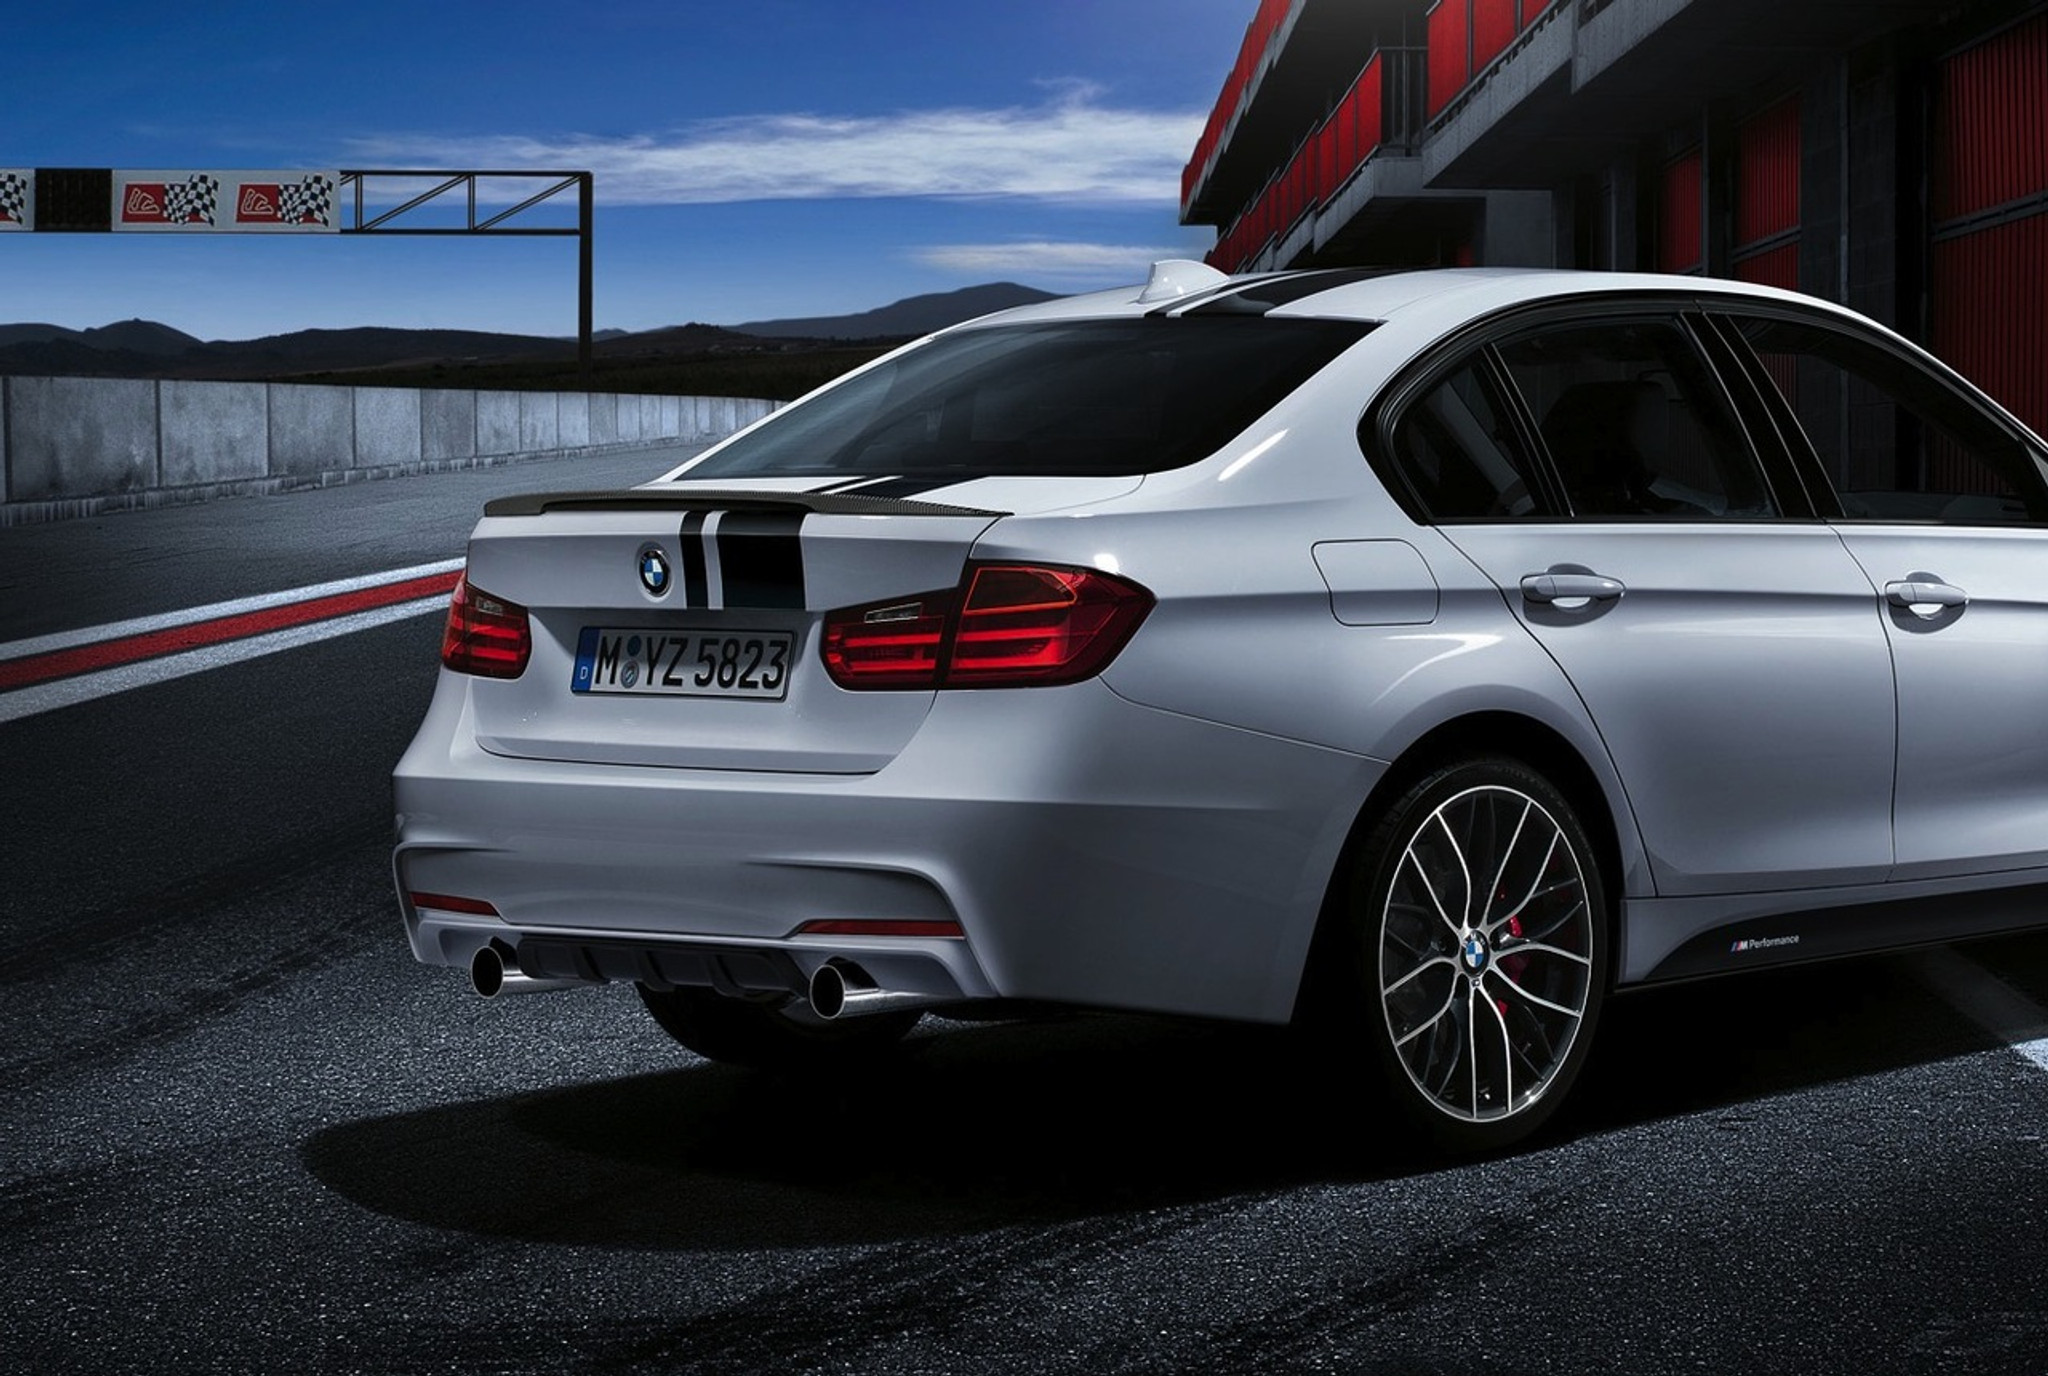 bmw m performance exhaust f30 335i bmr autowerkes. Black Bedroom Furniture Sets. Home Design Ideas